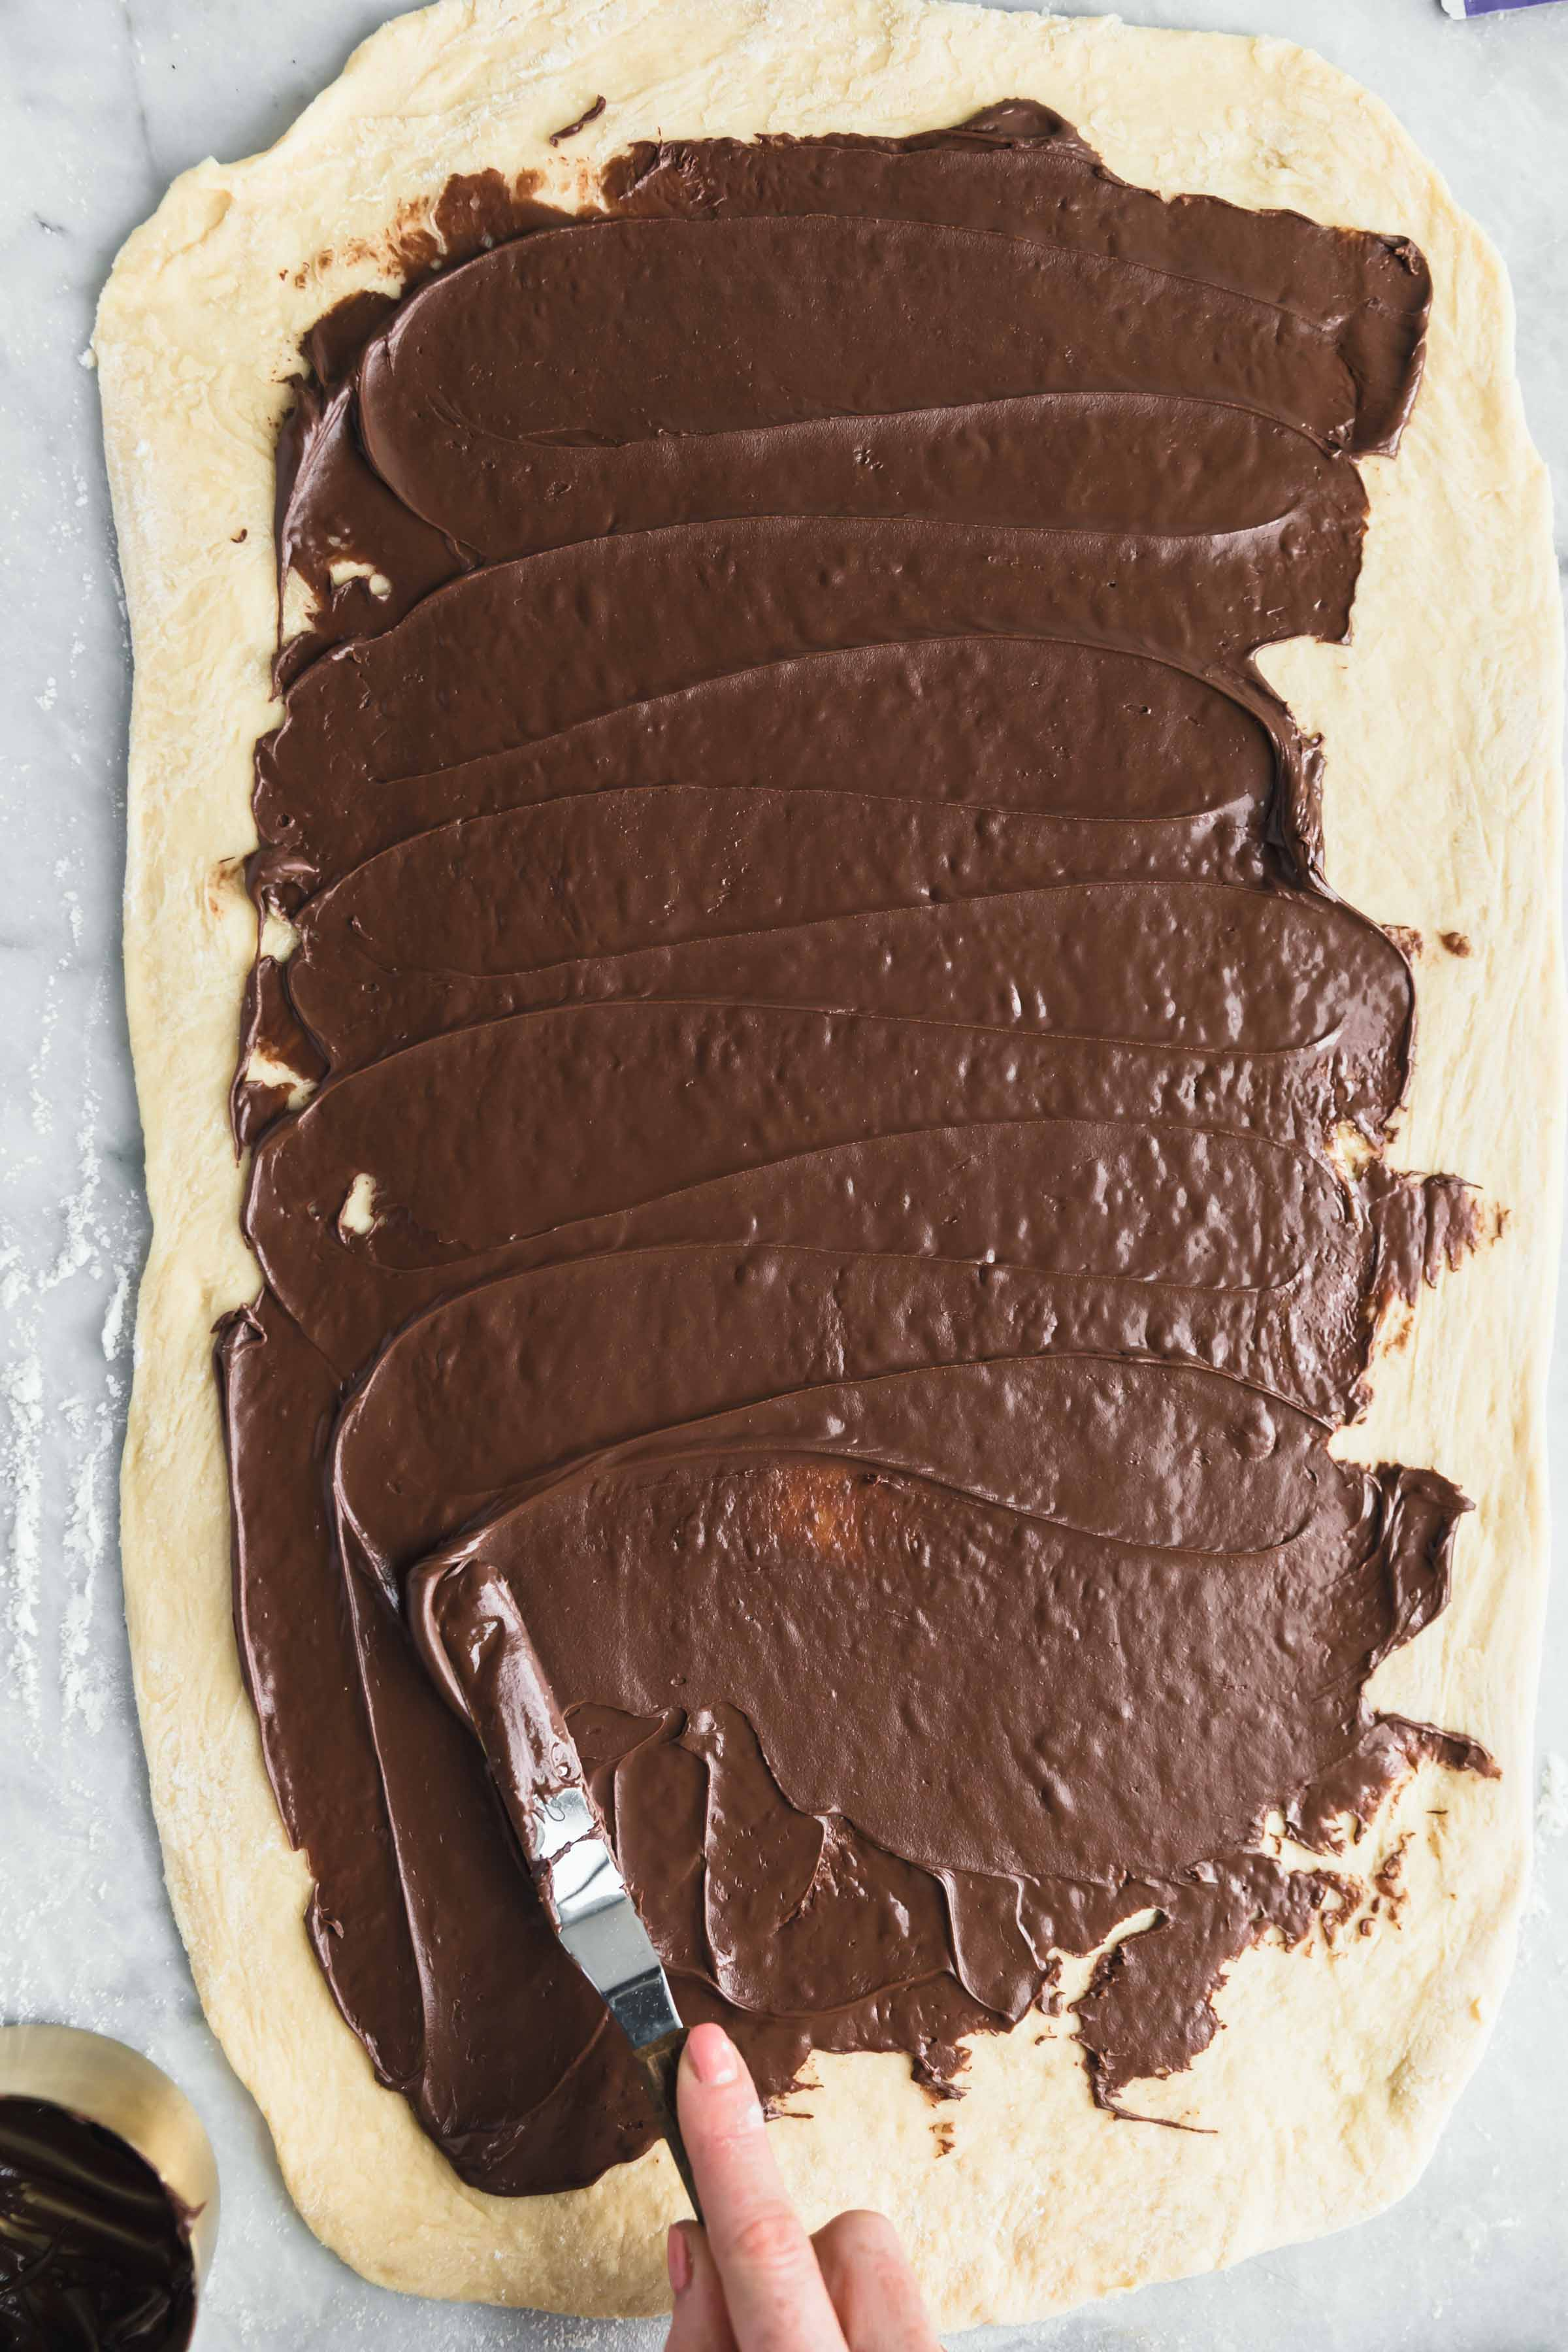 spread the chocolate spread using an offset spatula